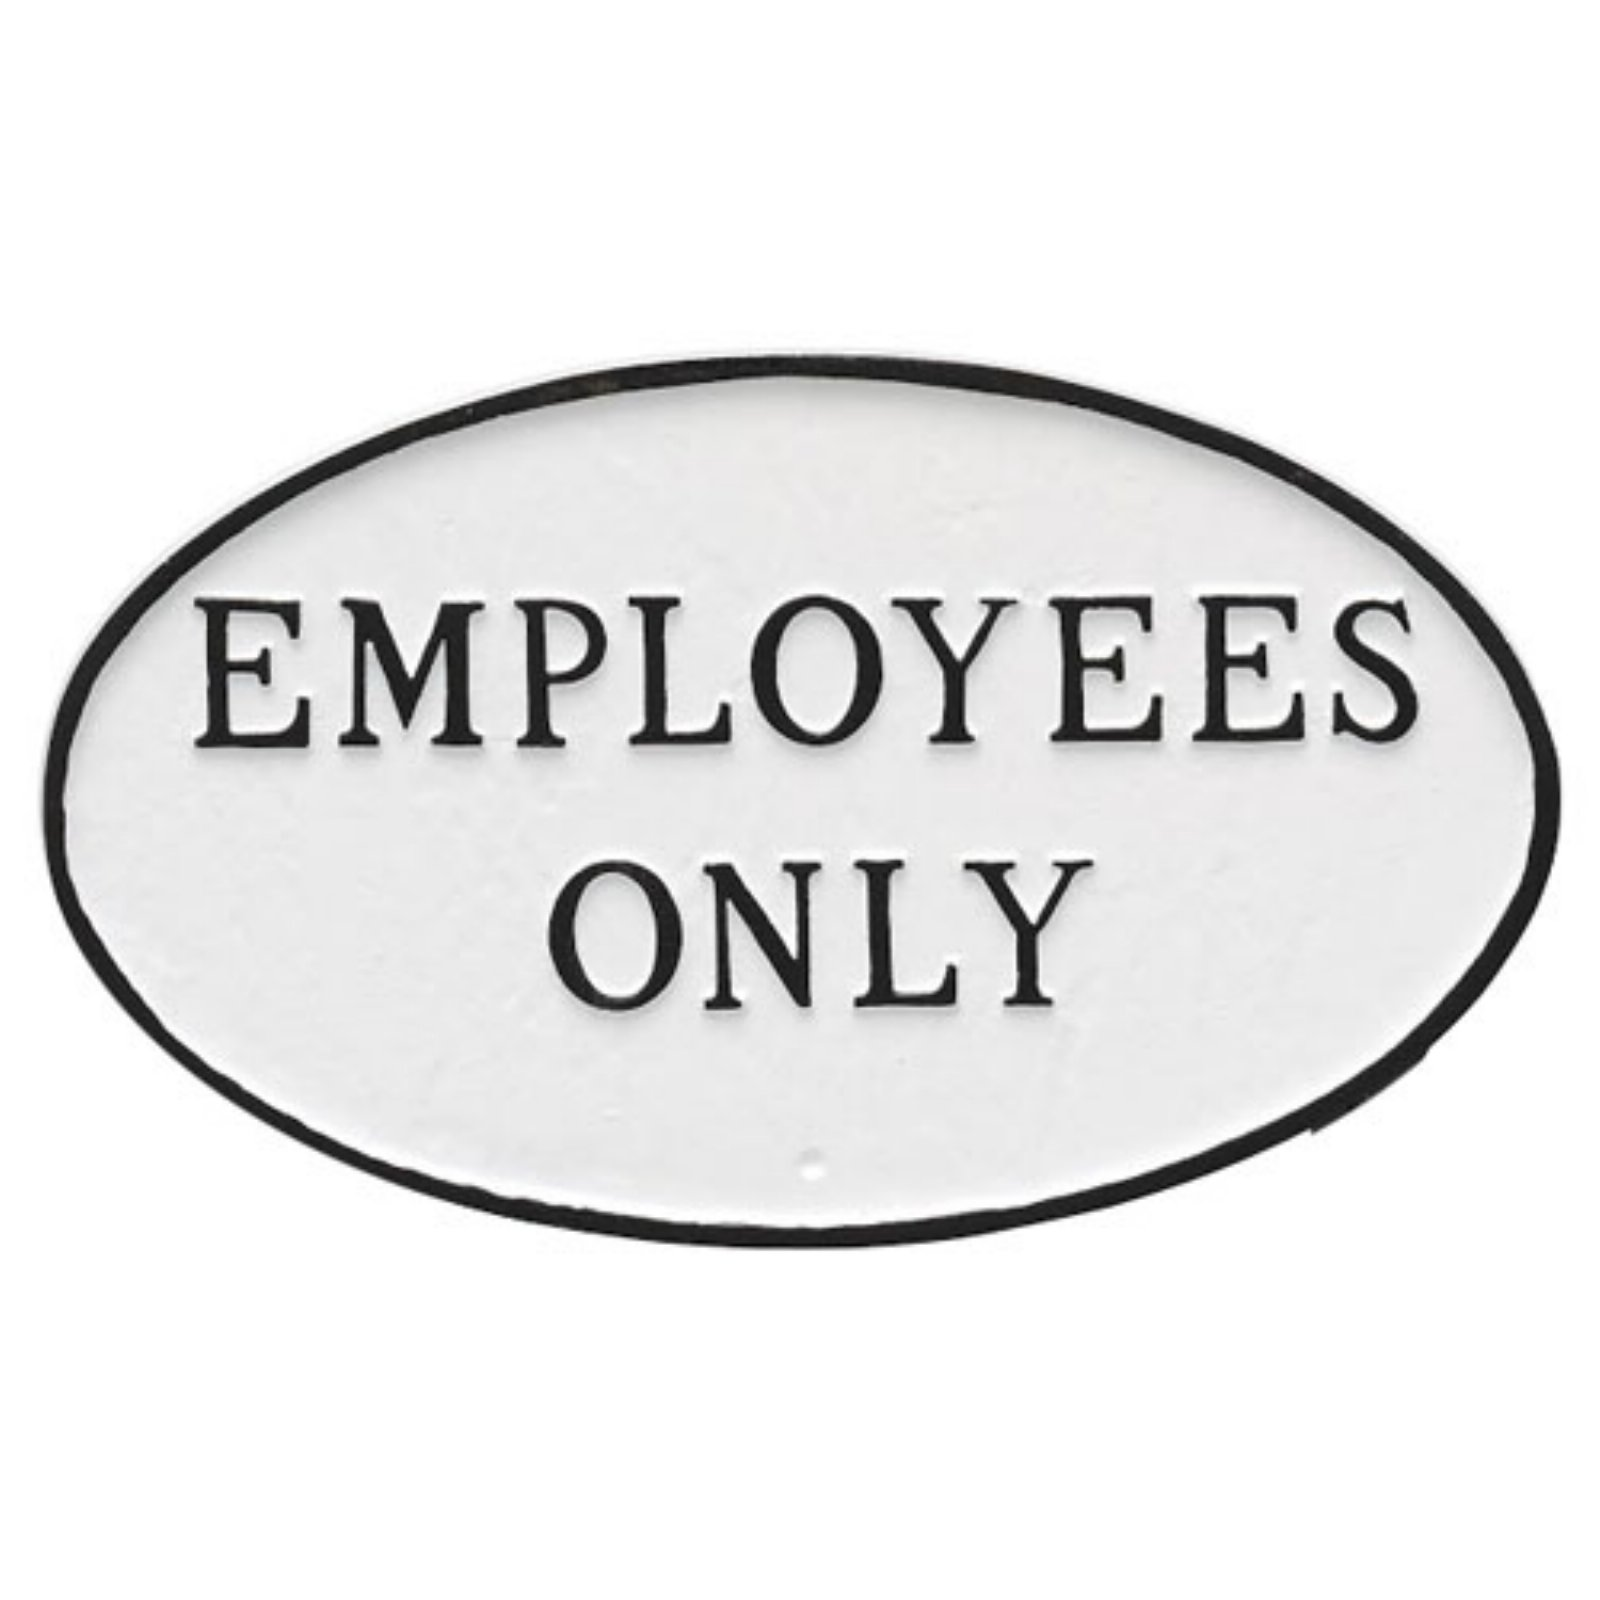 Montague Metal Products Employees Only Oval Wall Plaque